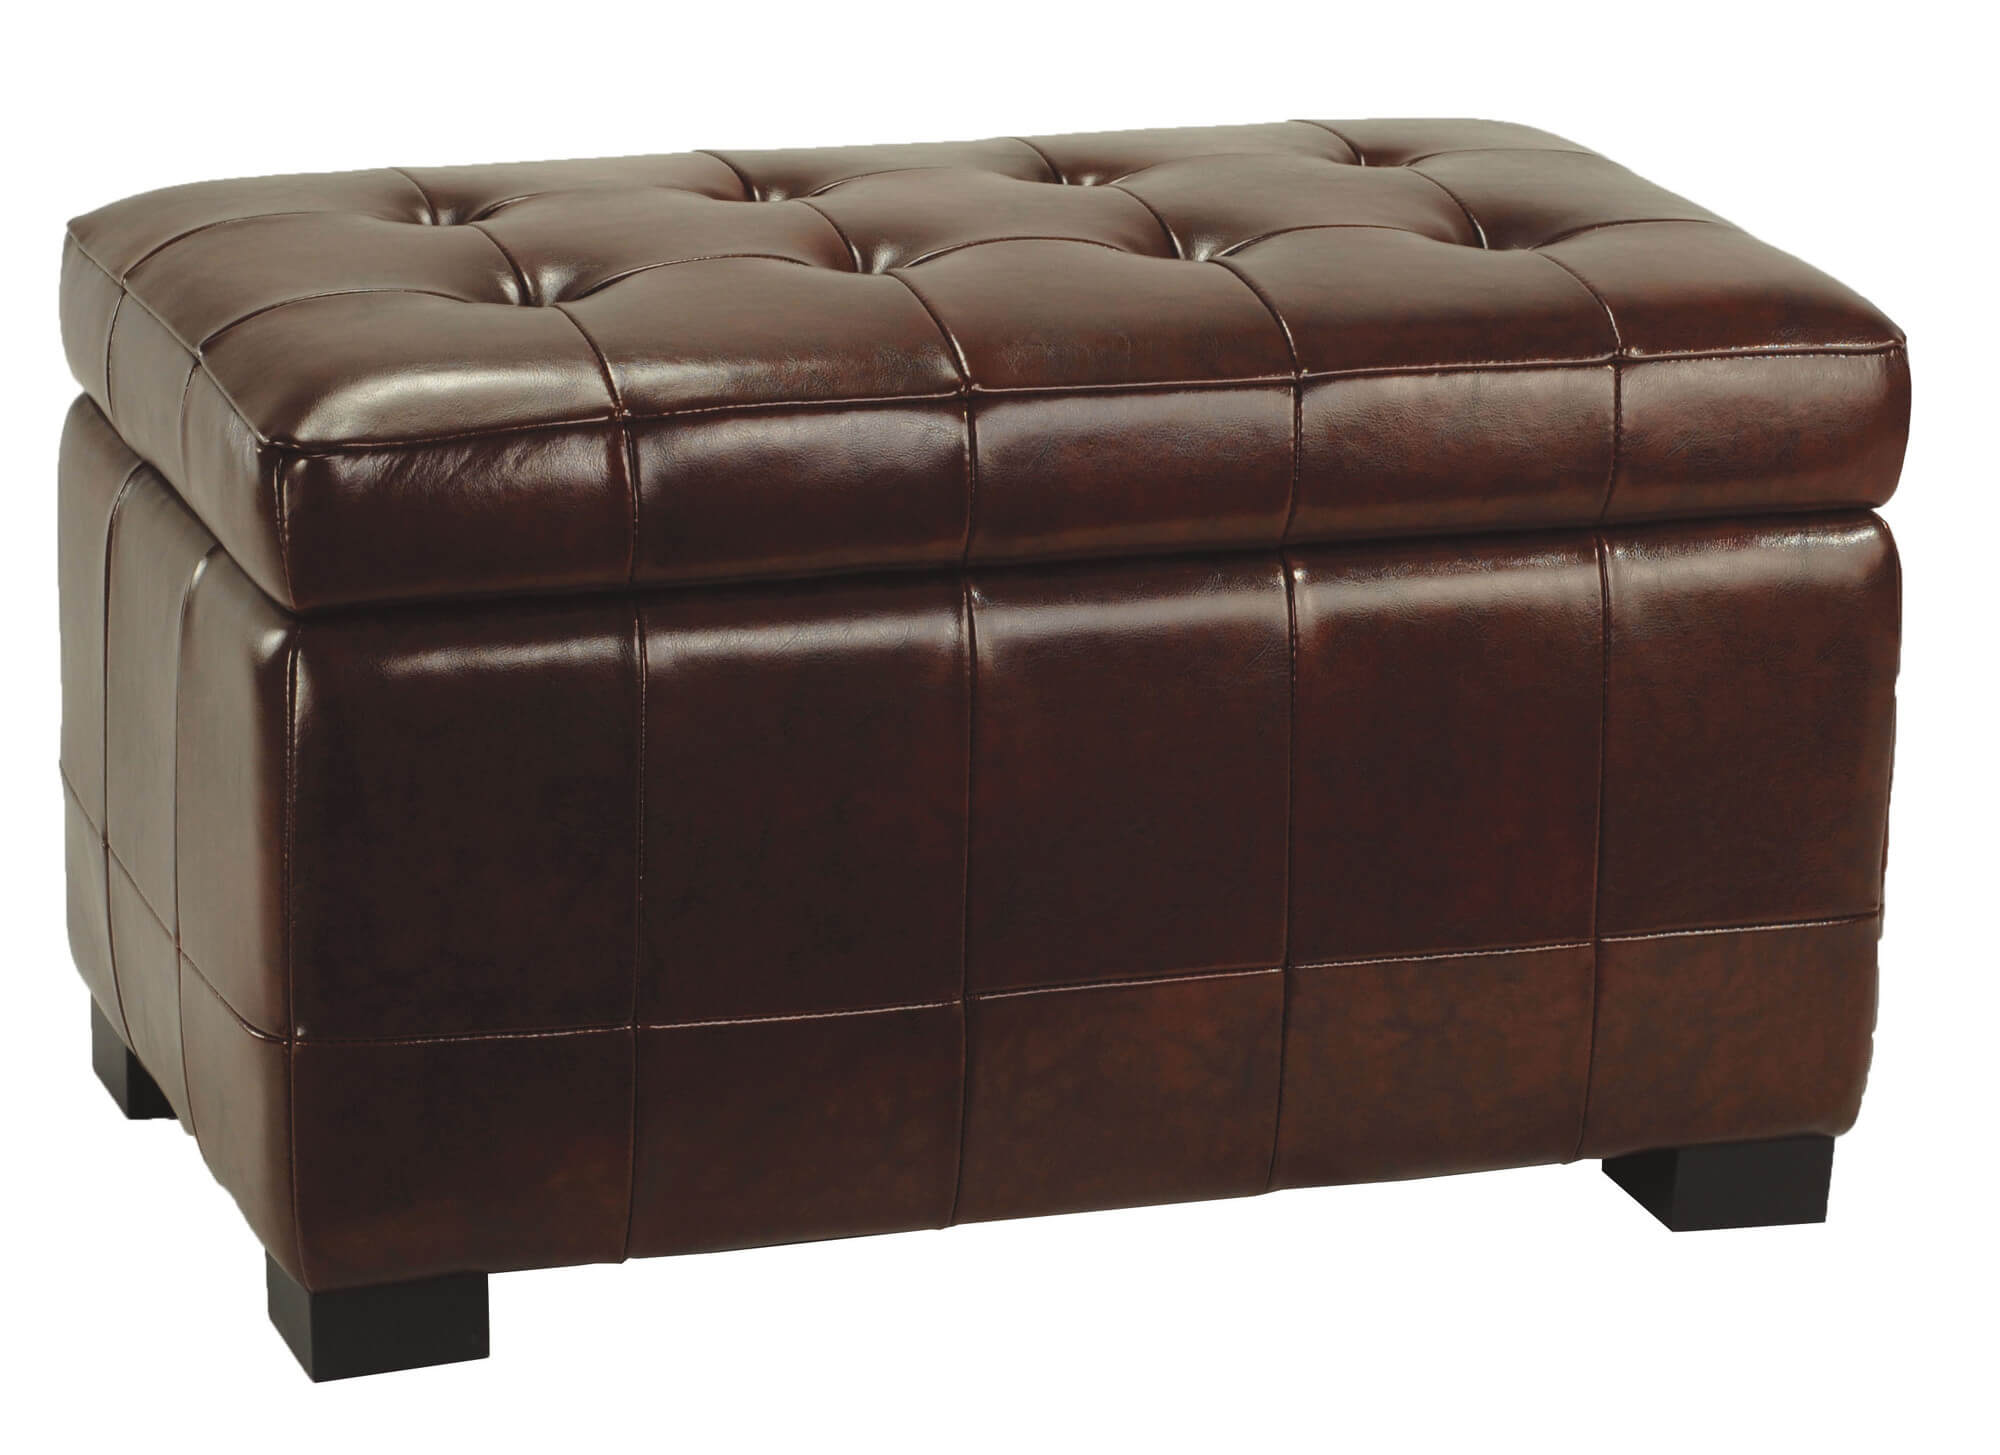 Large Beechwood Ottoman From Safavieh Is Clad In Leather And Features Hinged  Cushion Lid For Storage .